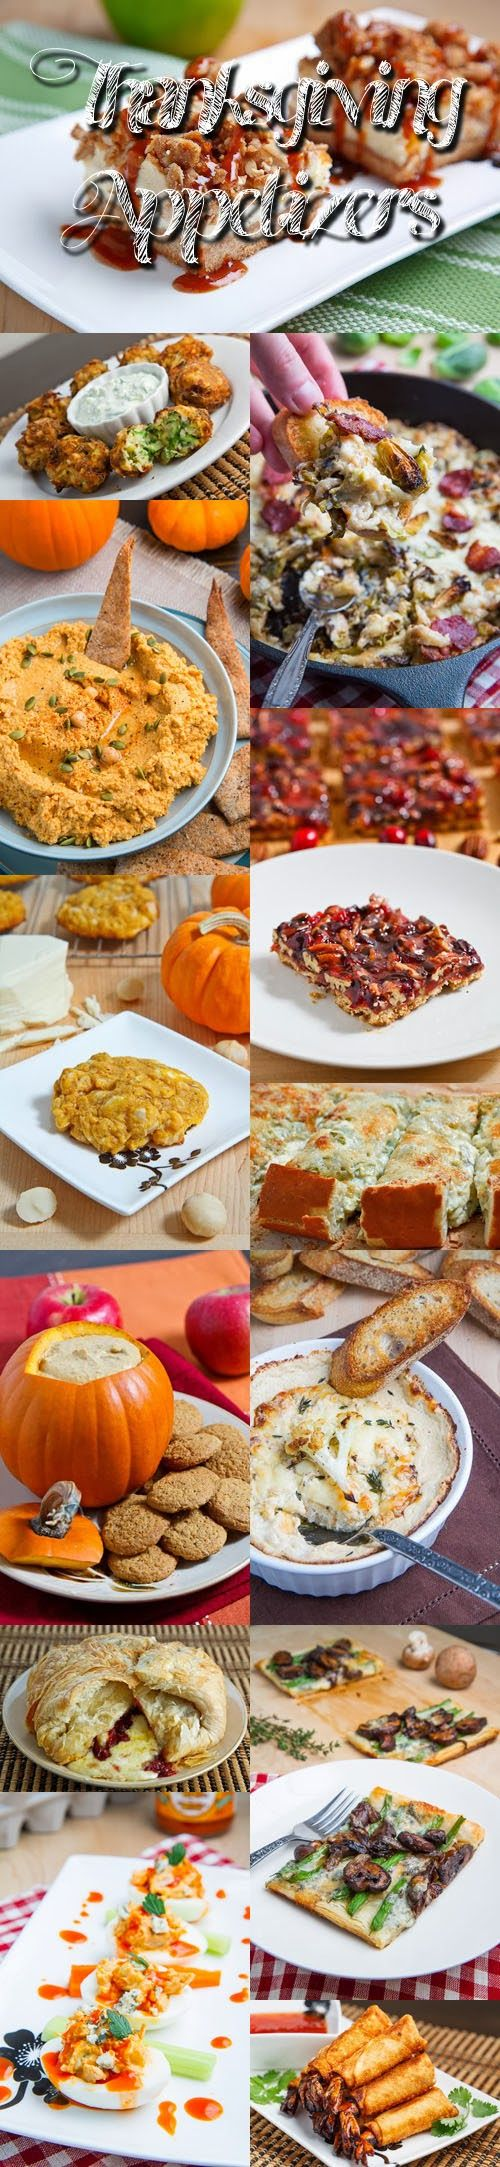 Thanksgiving appetizer recipes the appetizers or hors d oeuvres